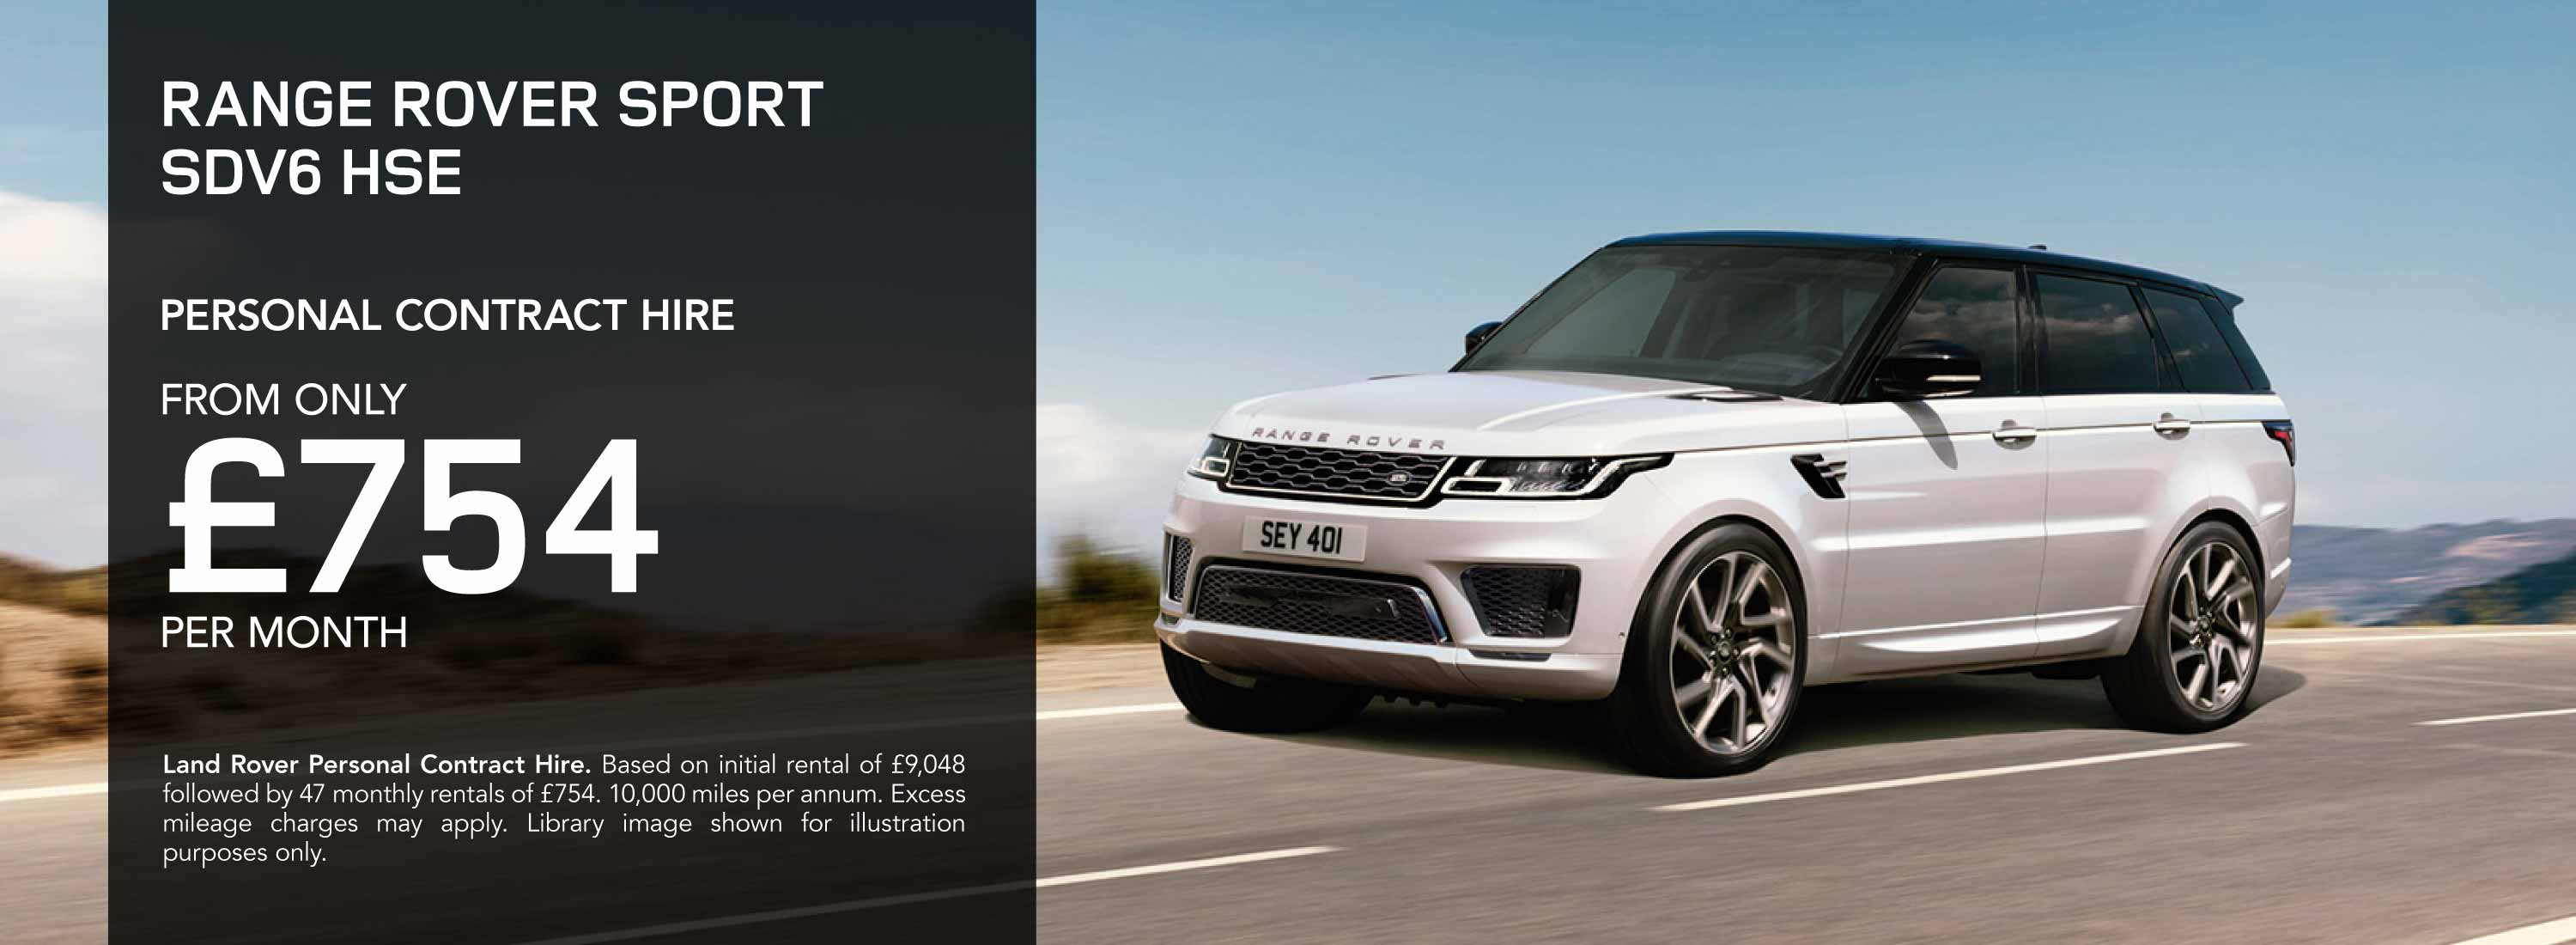 Range Rover Sport Personal Contract Hire Offer